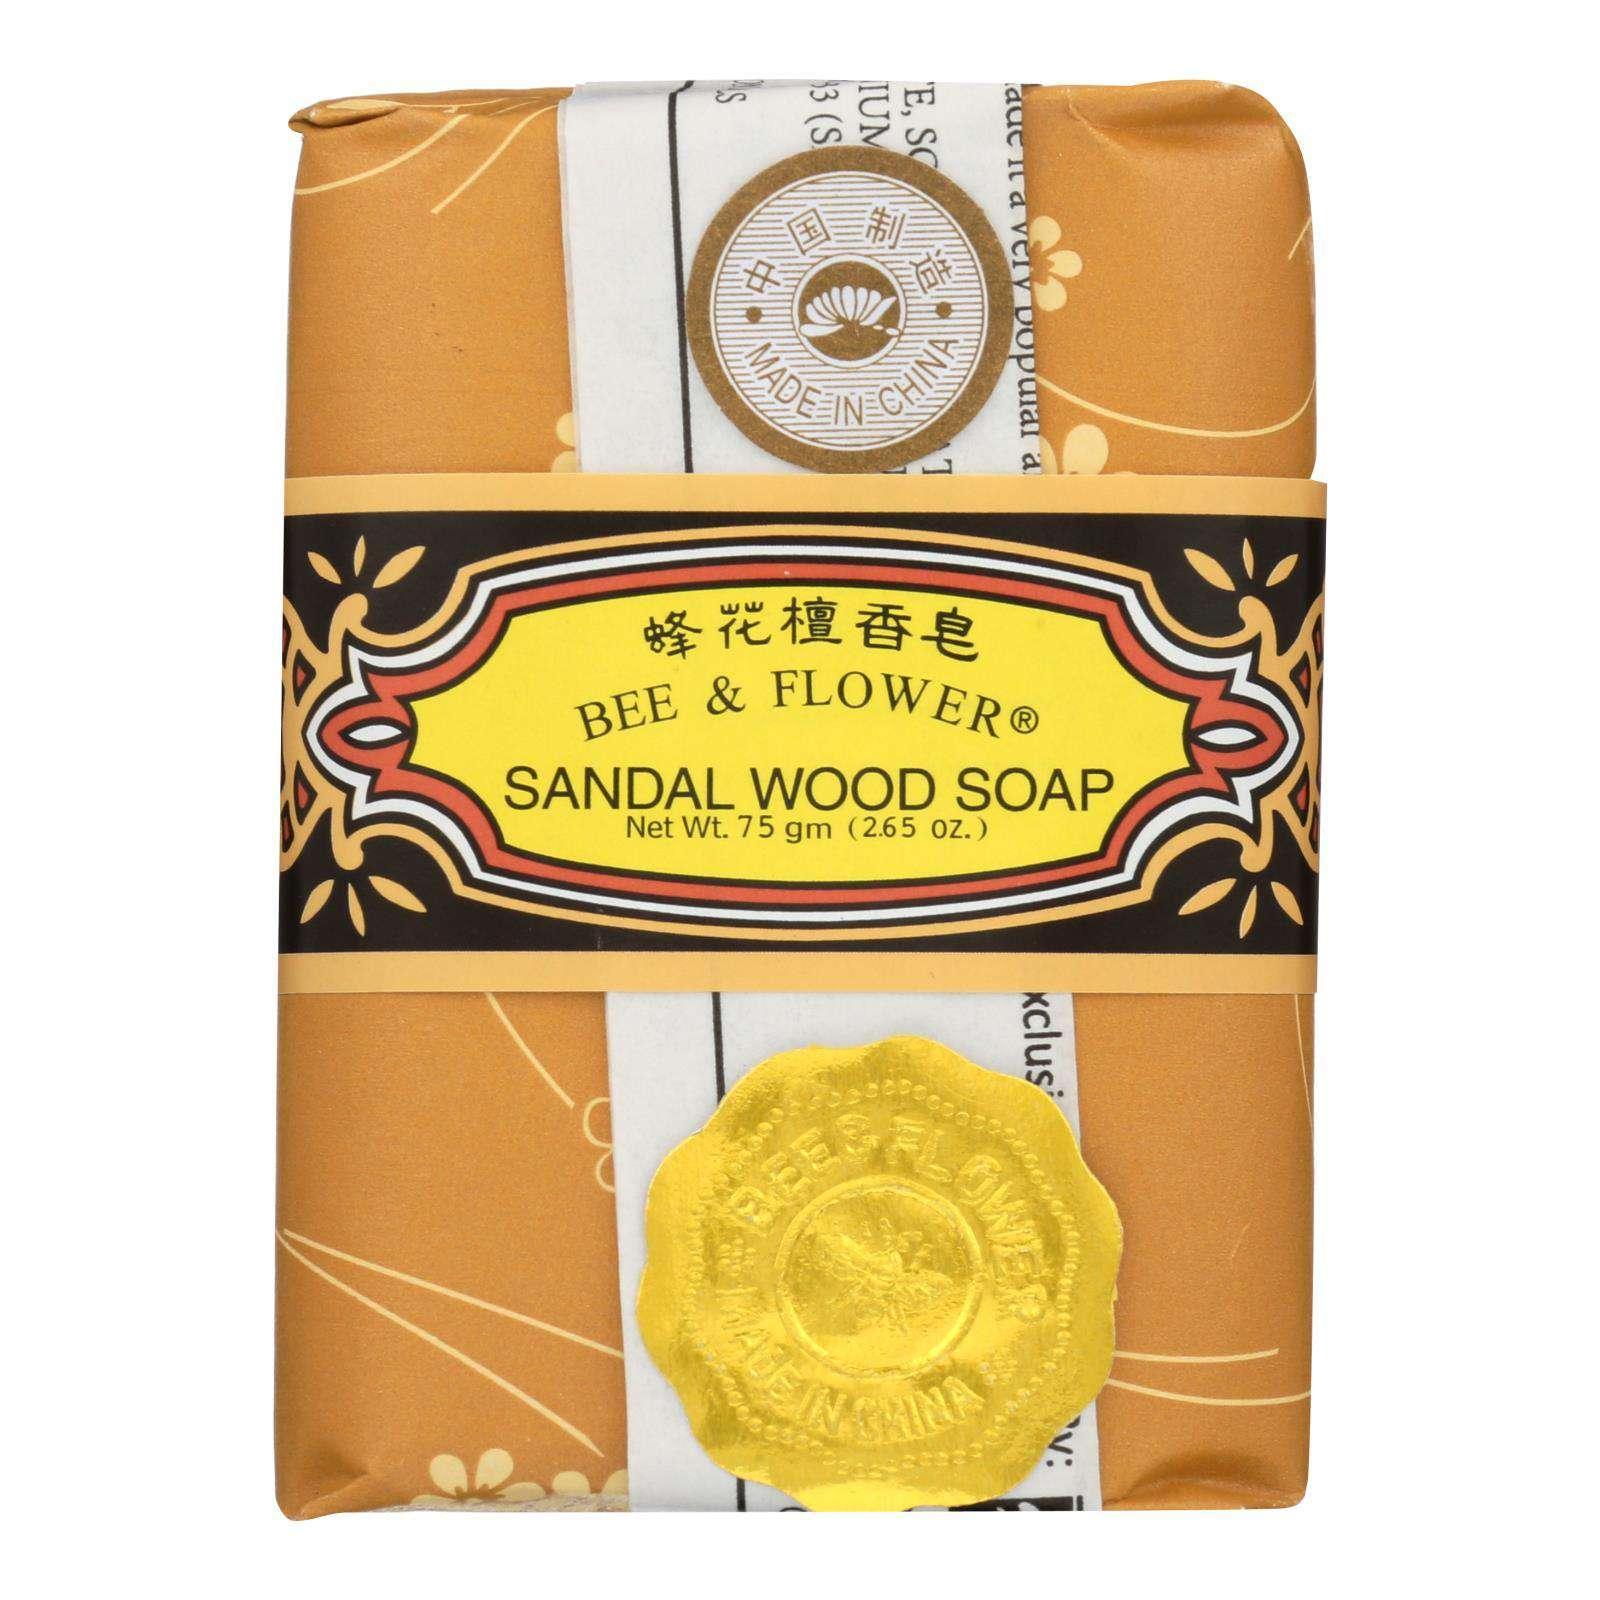 Bee And Flower Soap Sandalwood - 2.65 Oz - Case Of 12 - BeeGreen